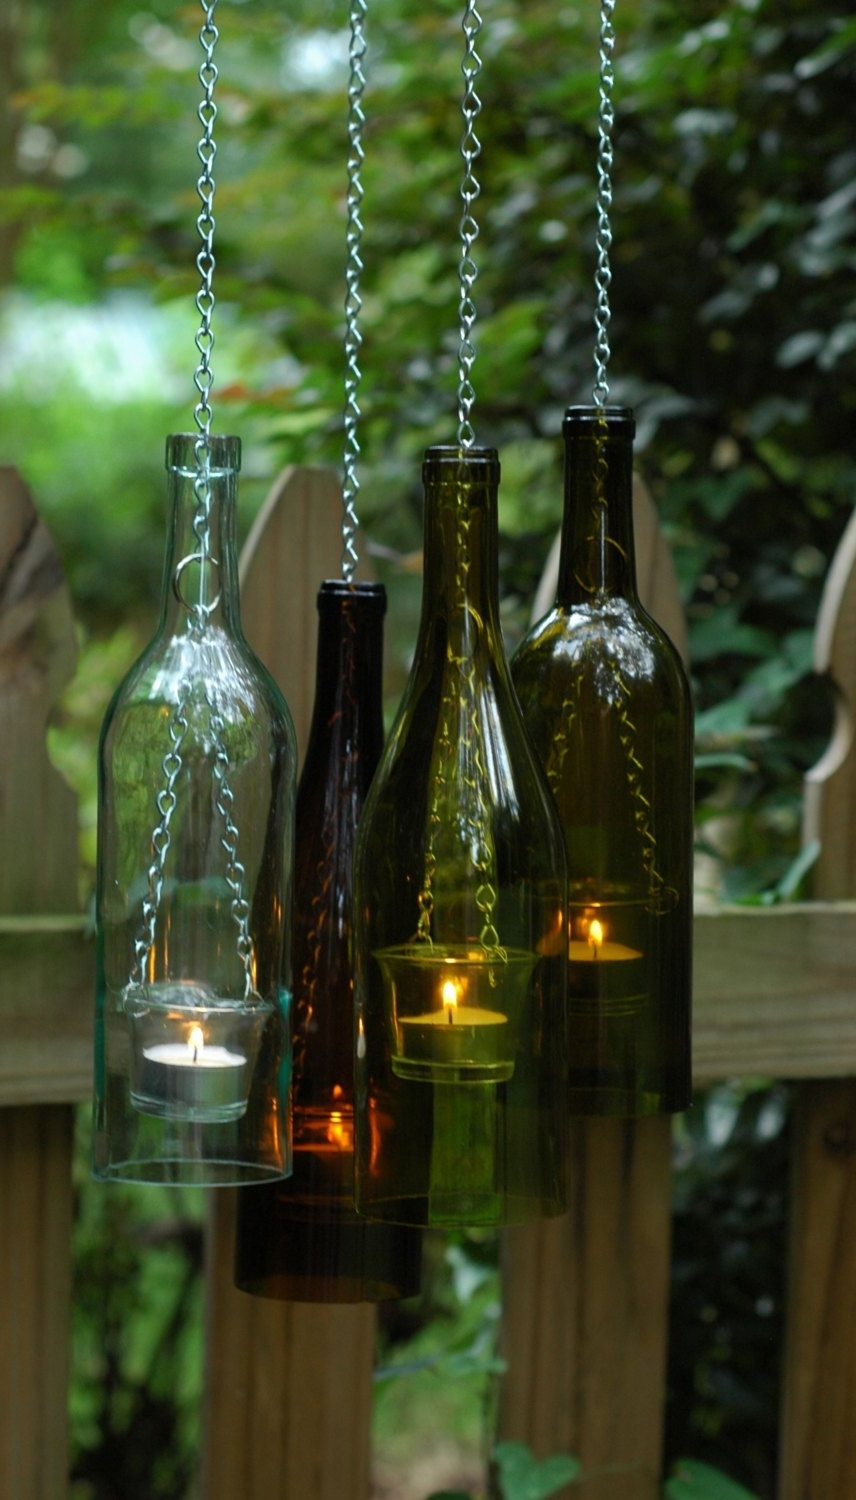 Well Liked Outdoor Hanging Bottle Lights Within 16 Charming Upcycled Outdoor Spring Lighting Ideas (View 19 of 20)